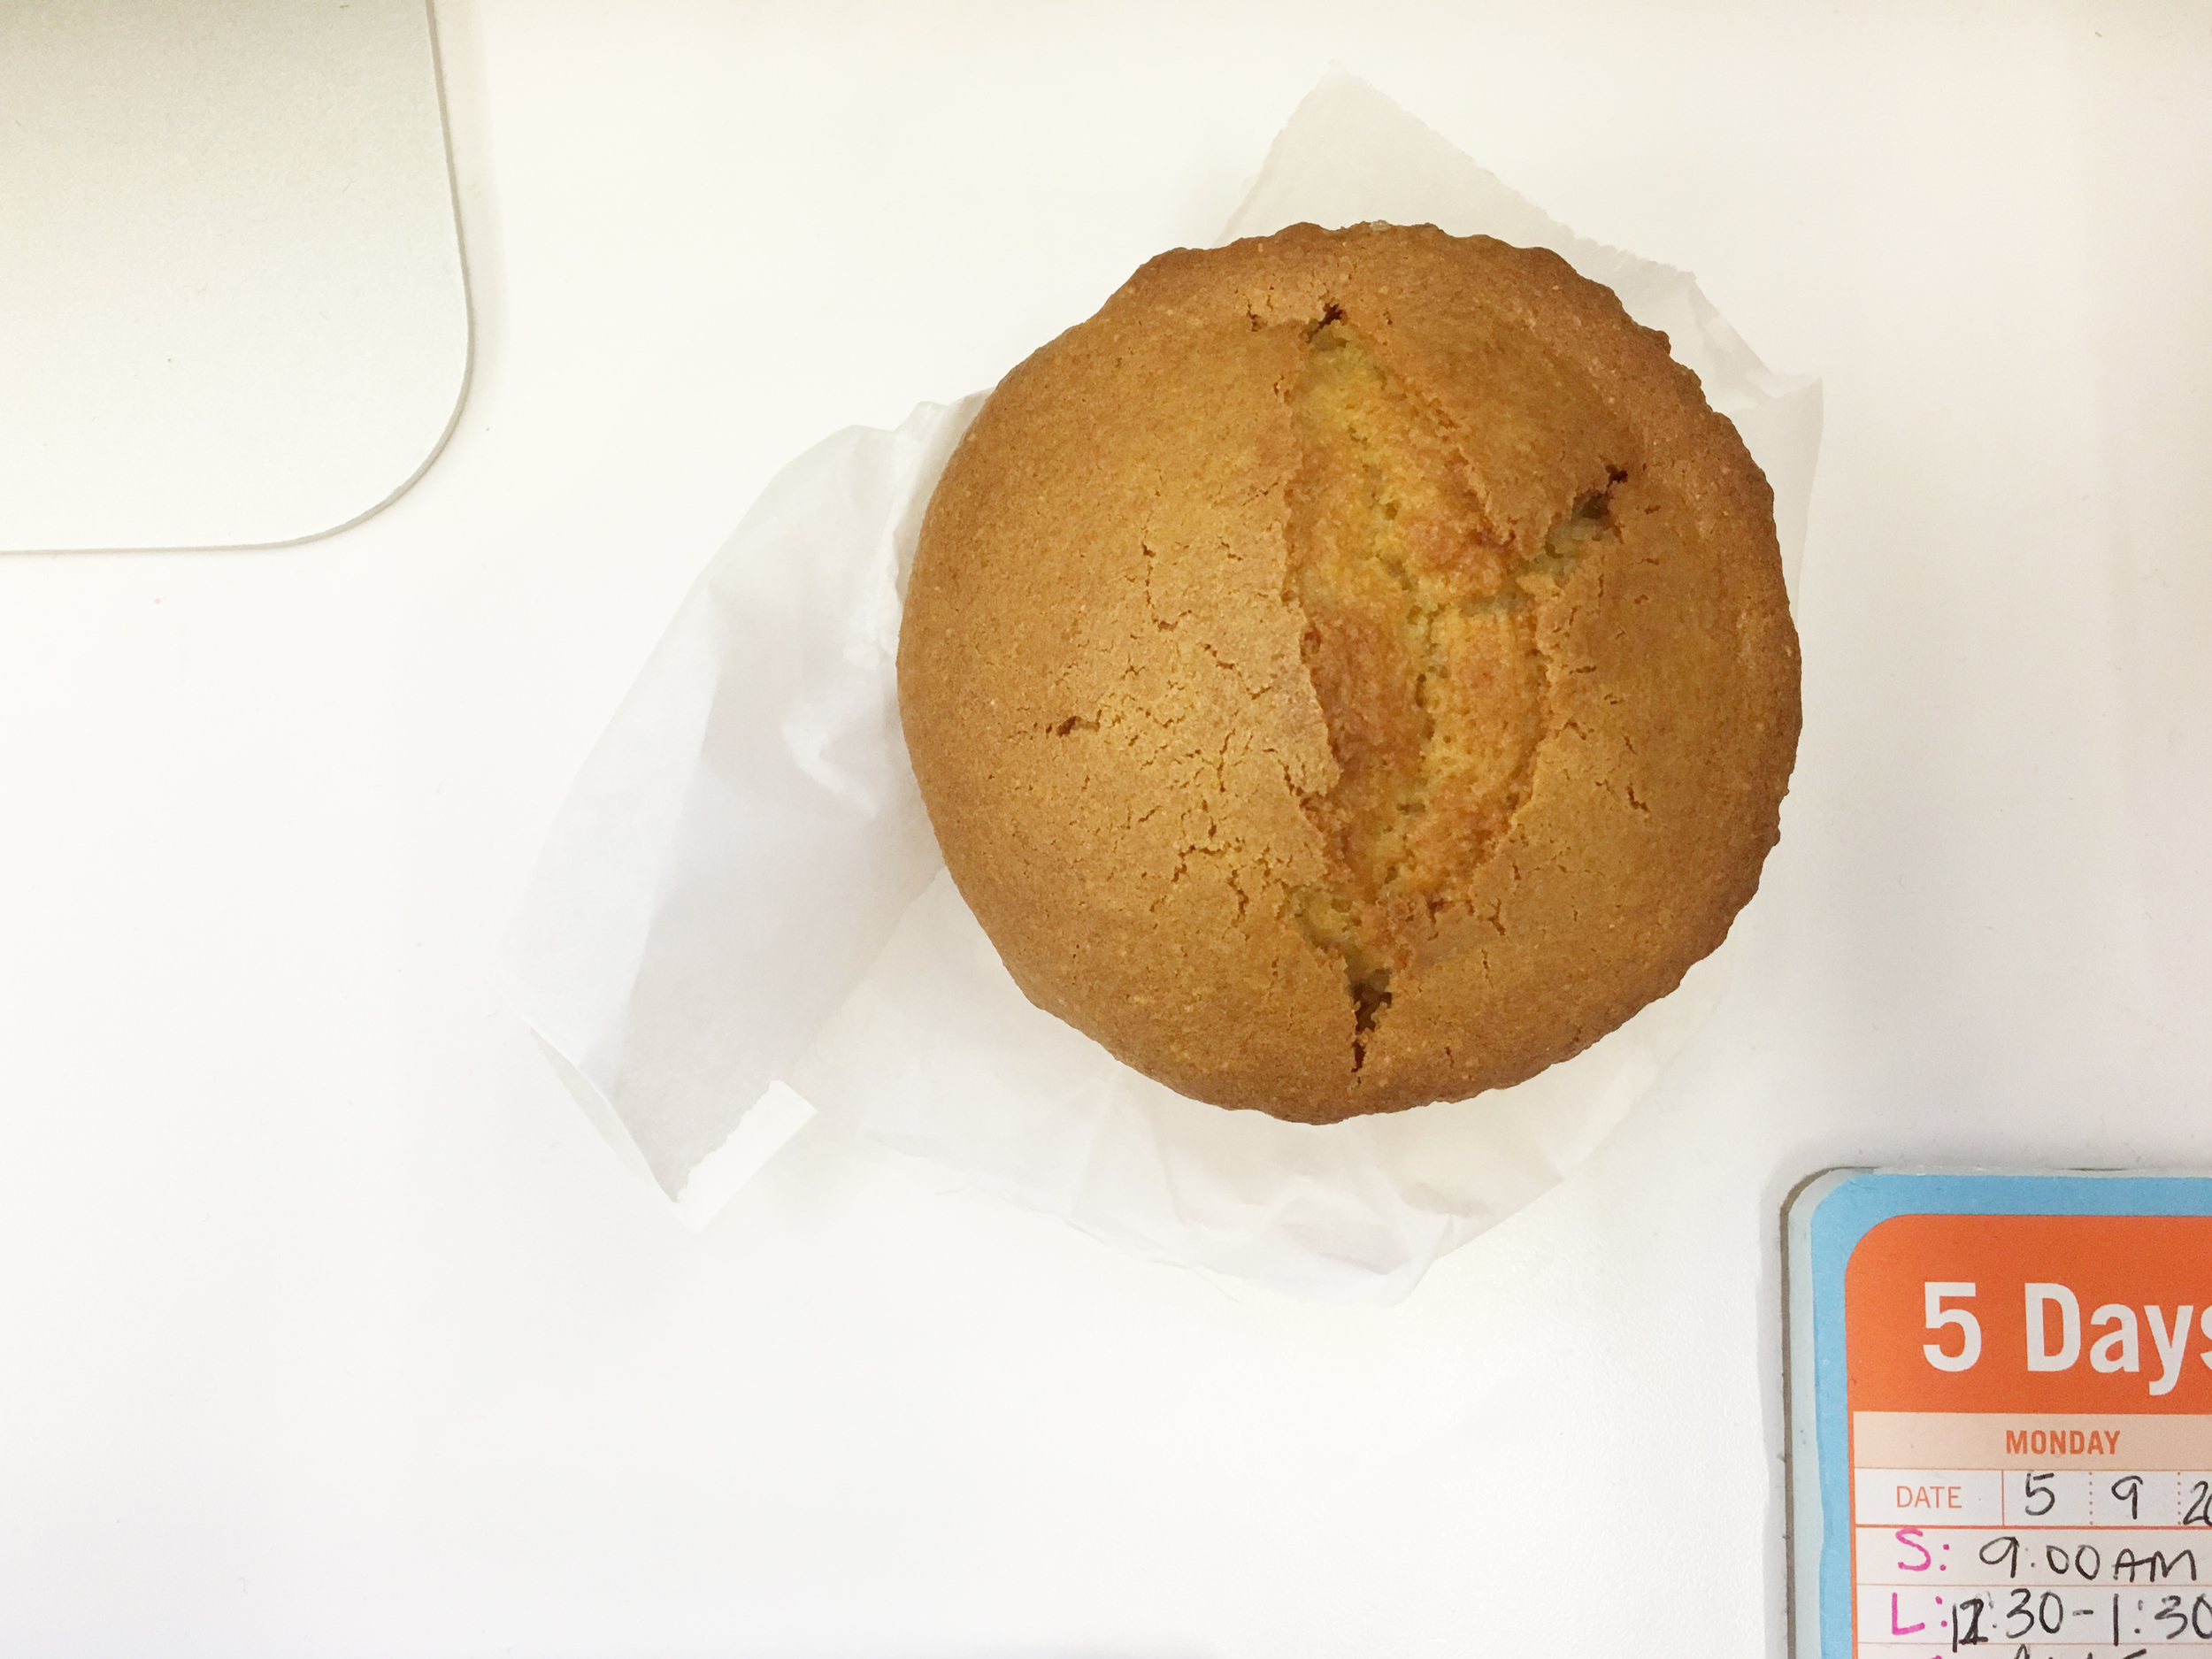 Time for a little mini break - which means my morning corn muffin, yum yum